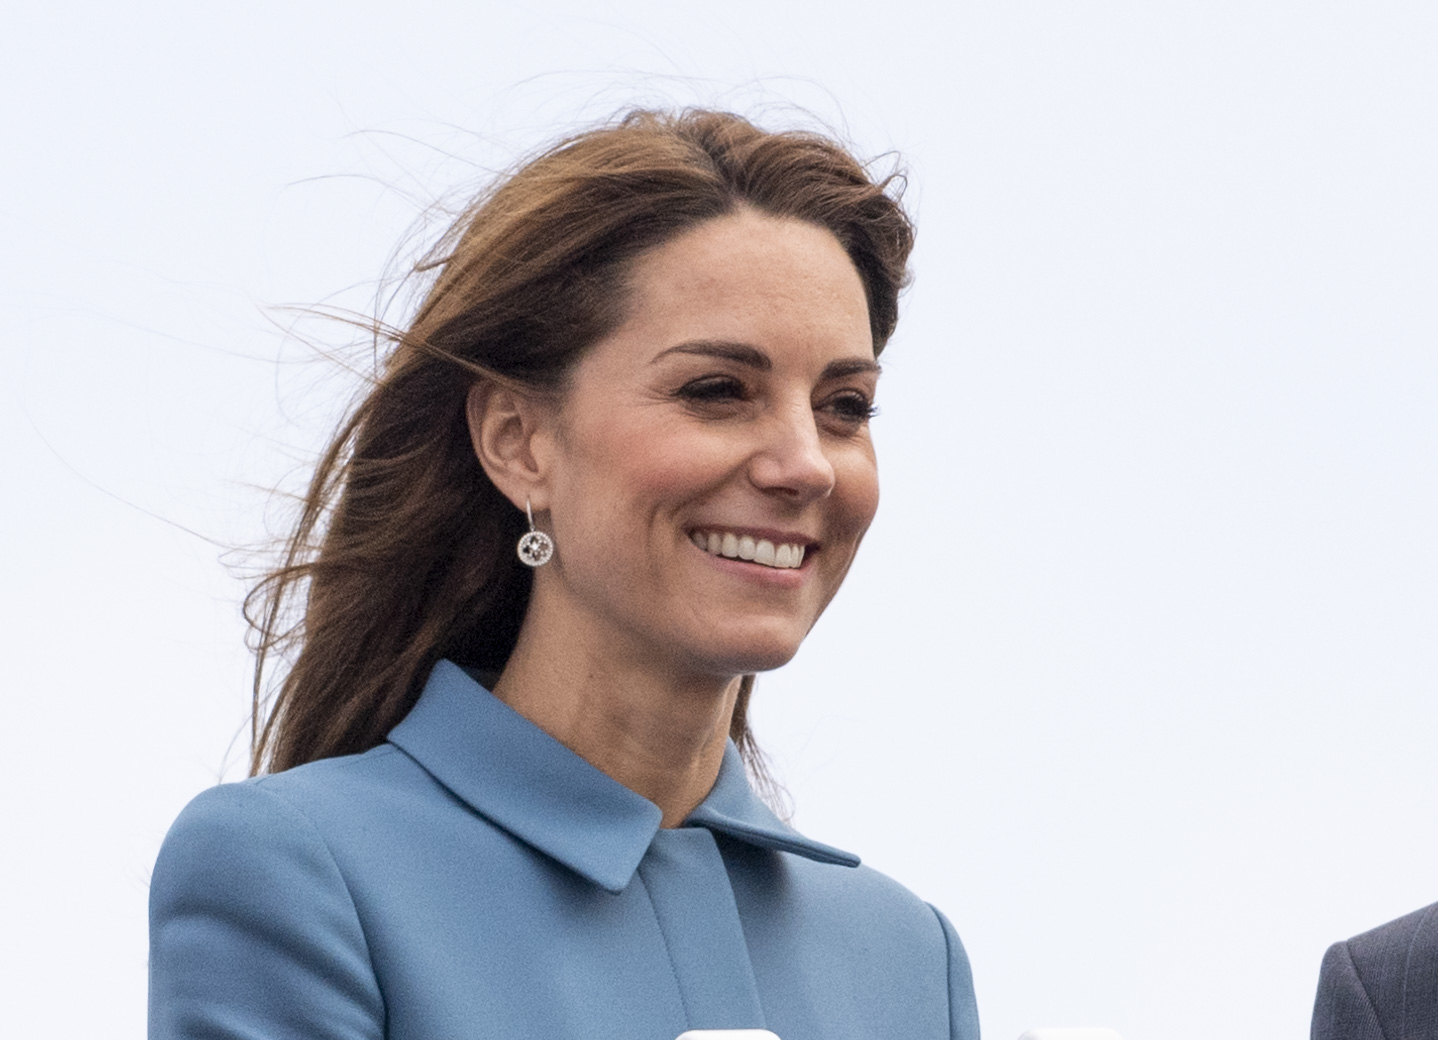 Kate Middleton Drops a Hint About Whether She and Prince William Will Have Another Baby - Woman's World